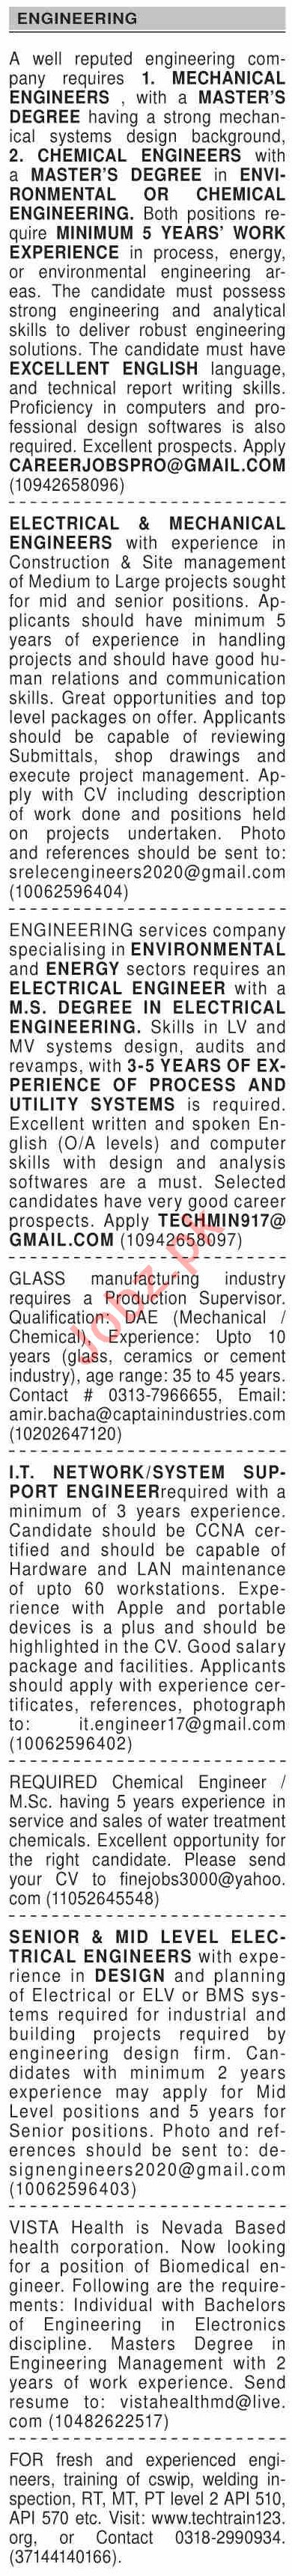 Dawn Sunday Classified Ads 27 Dec 2020 for Engineering Staff